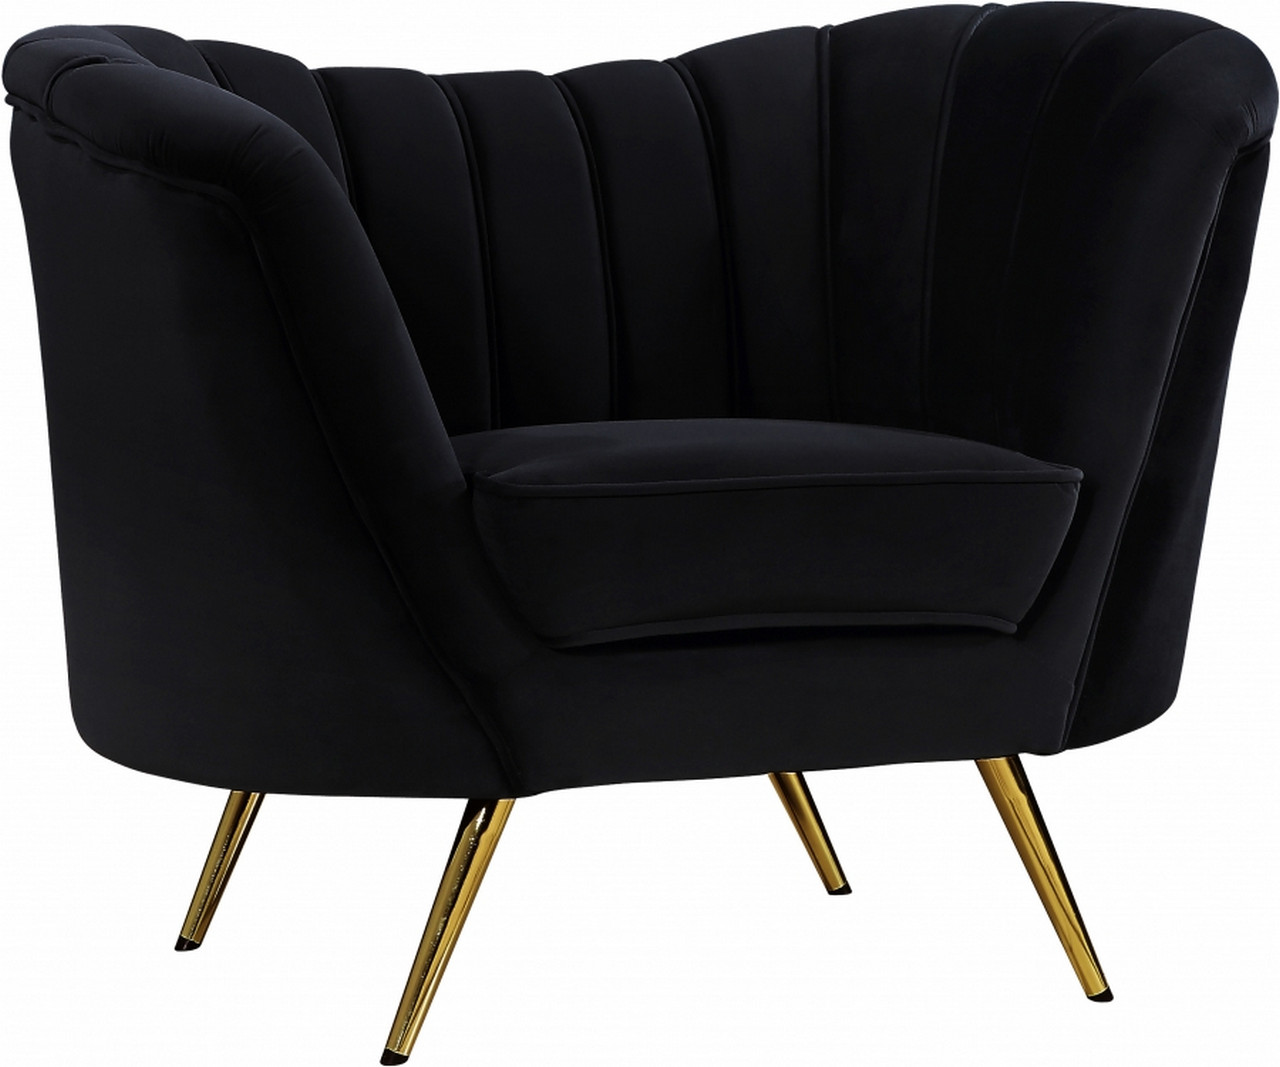 Black Velvet Chair Shelby Scoop Back Channel Tufted Black Velvet Chair W Gold